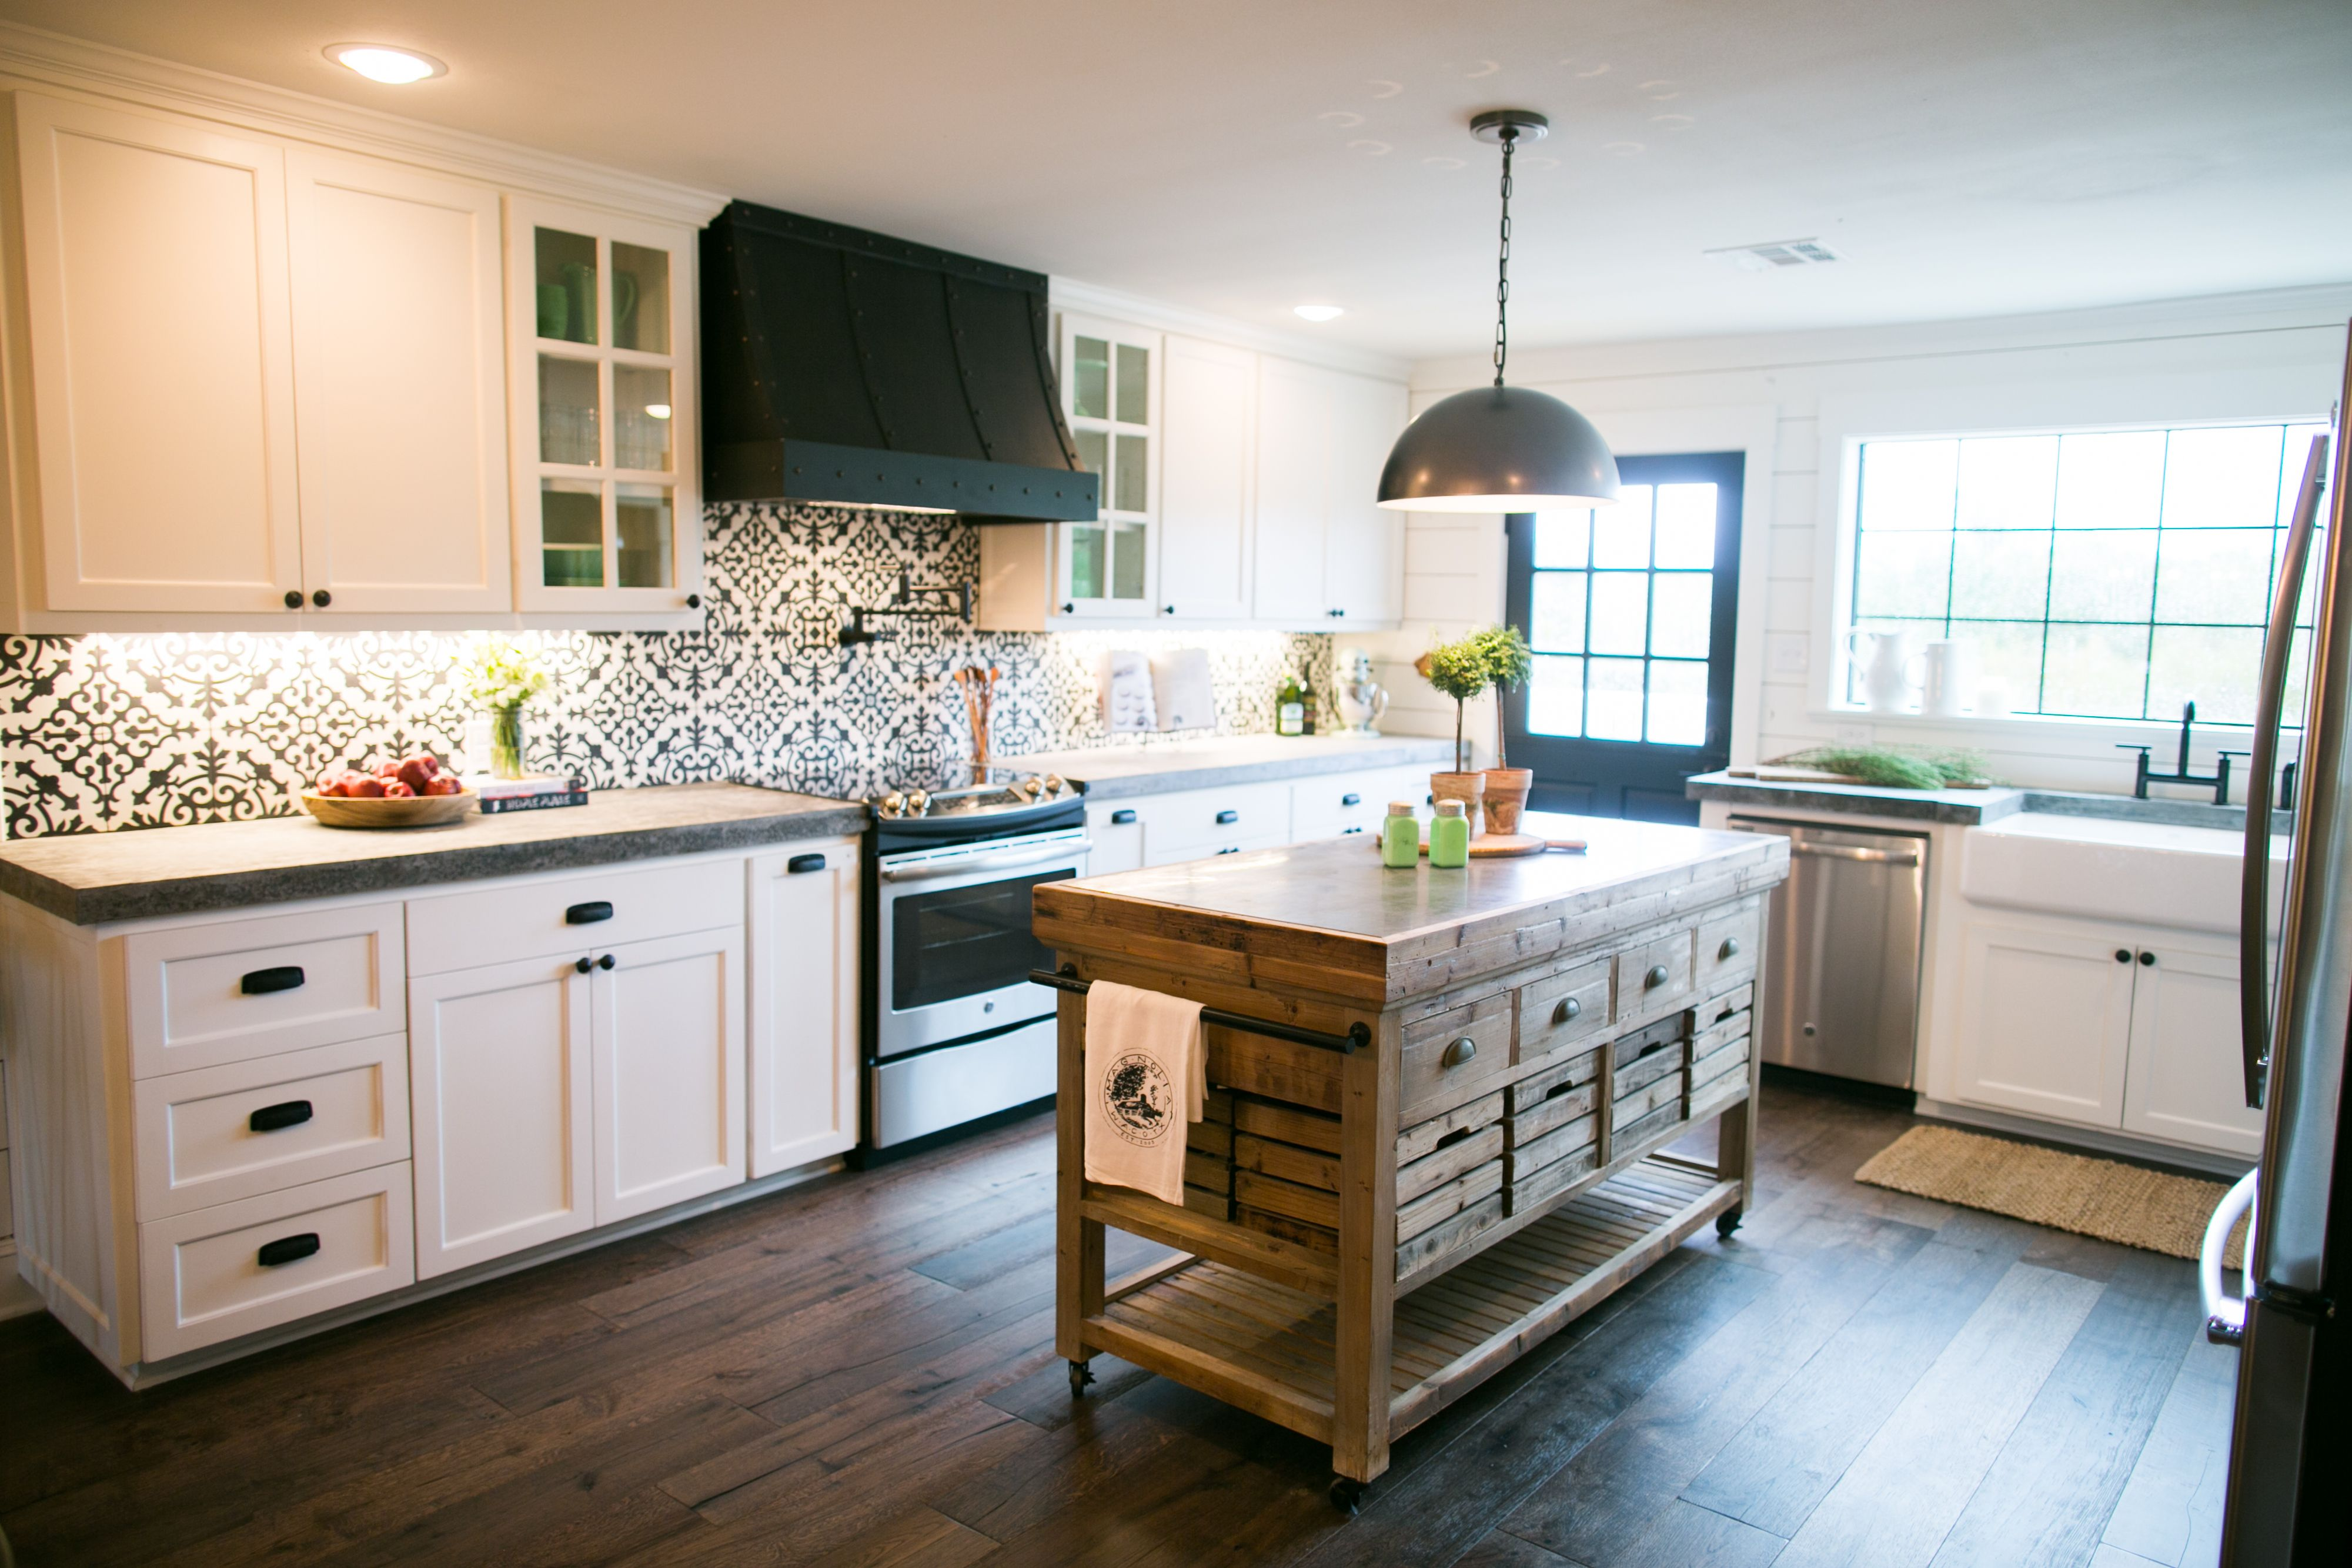 Fixer upper kitchen cabinet paint - 17 Best Images About One Of Those Things On Pinterest Paint Colors Magnolia Market And Islands